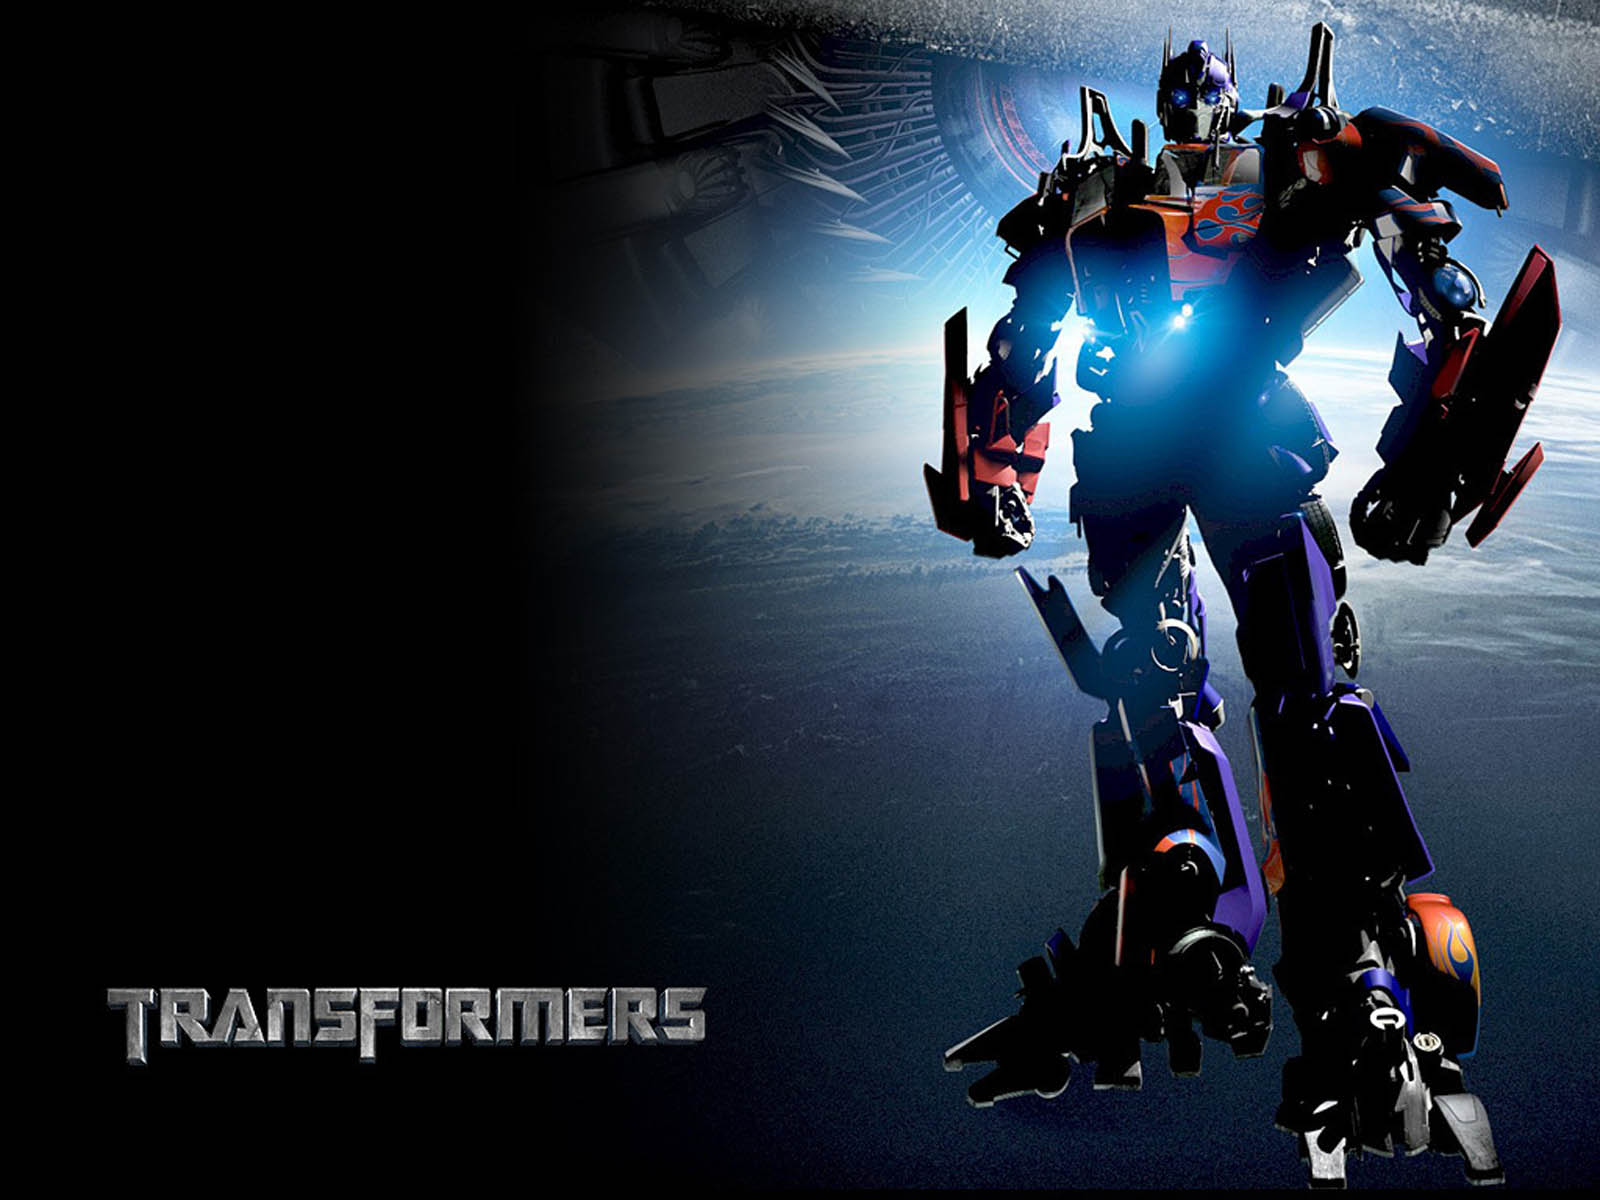 Wallpapers transformers - Transformers desktop backgrounds ...